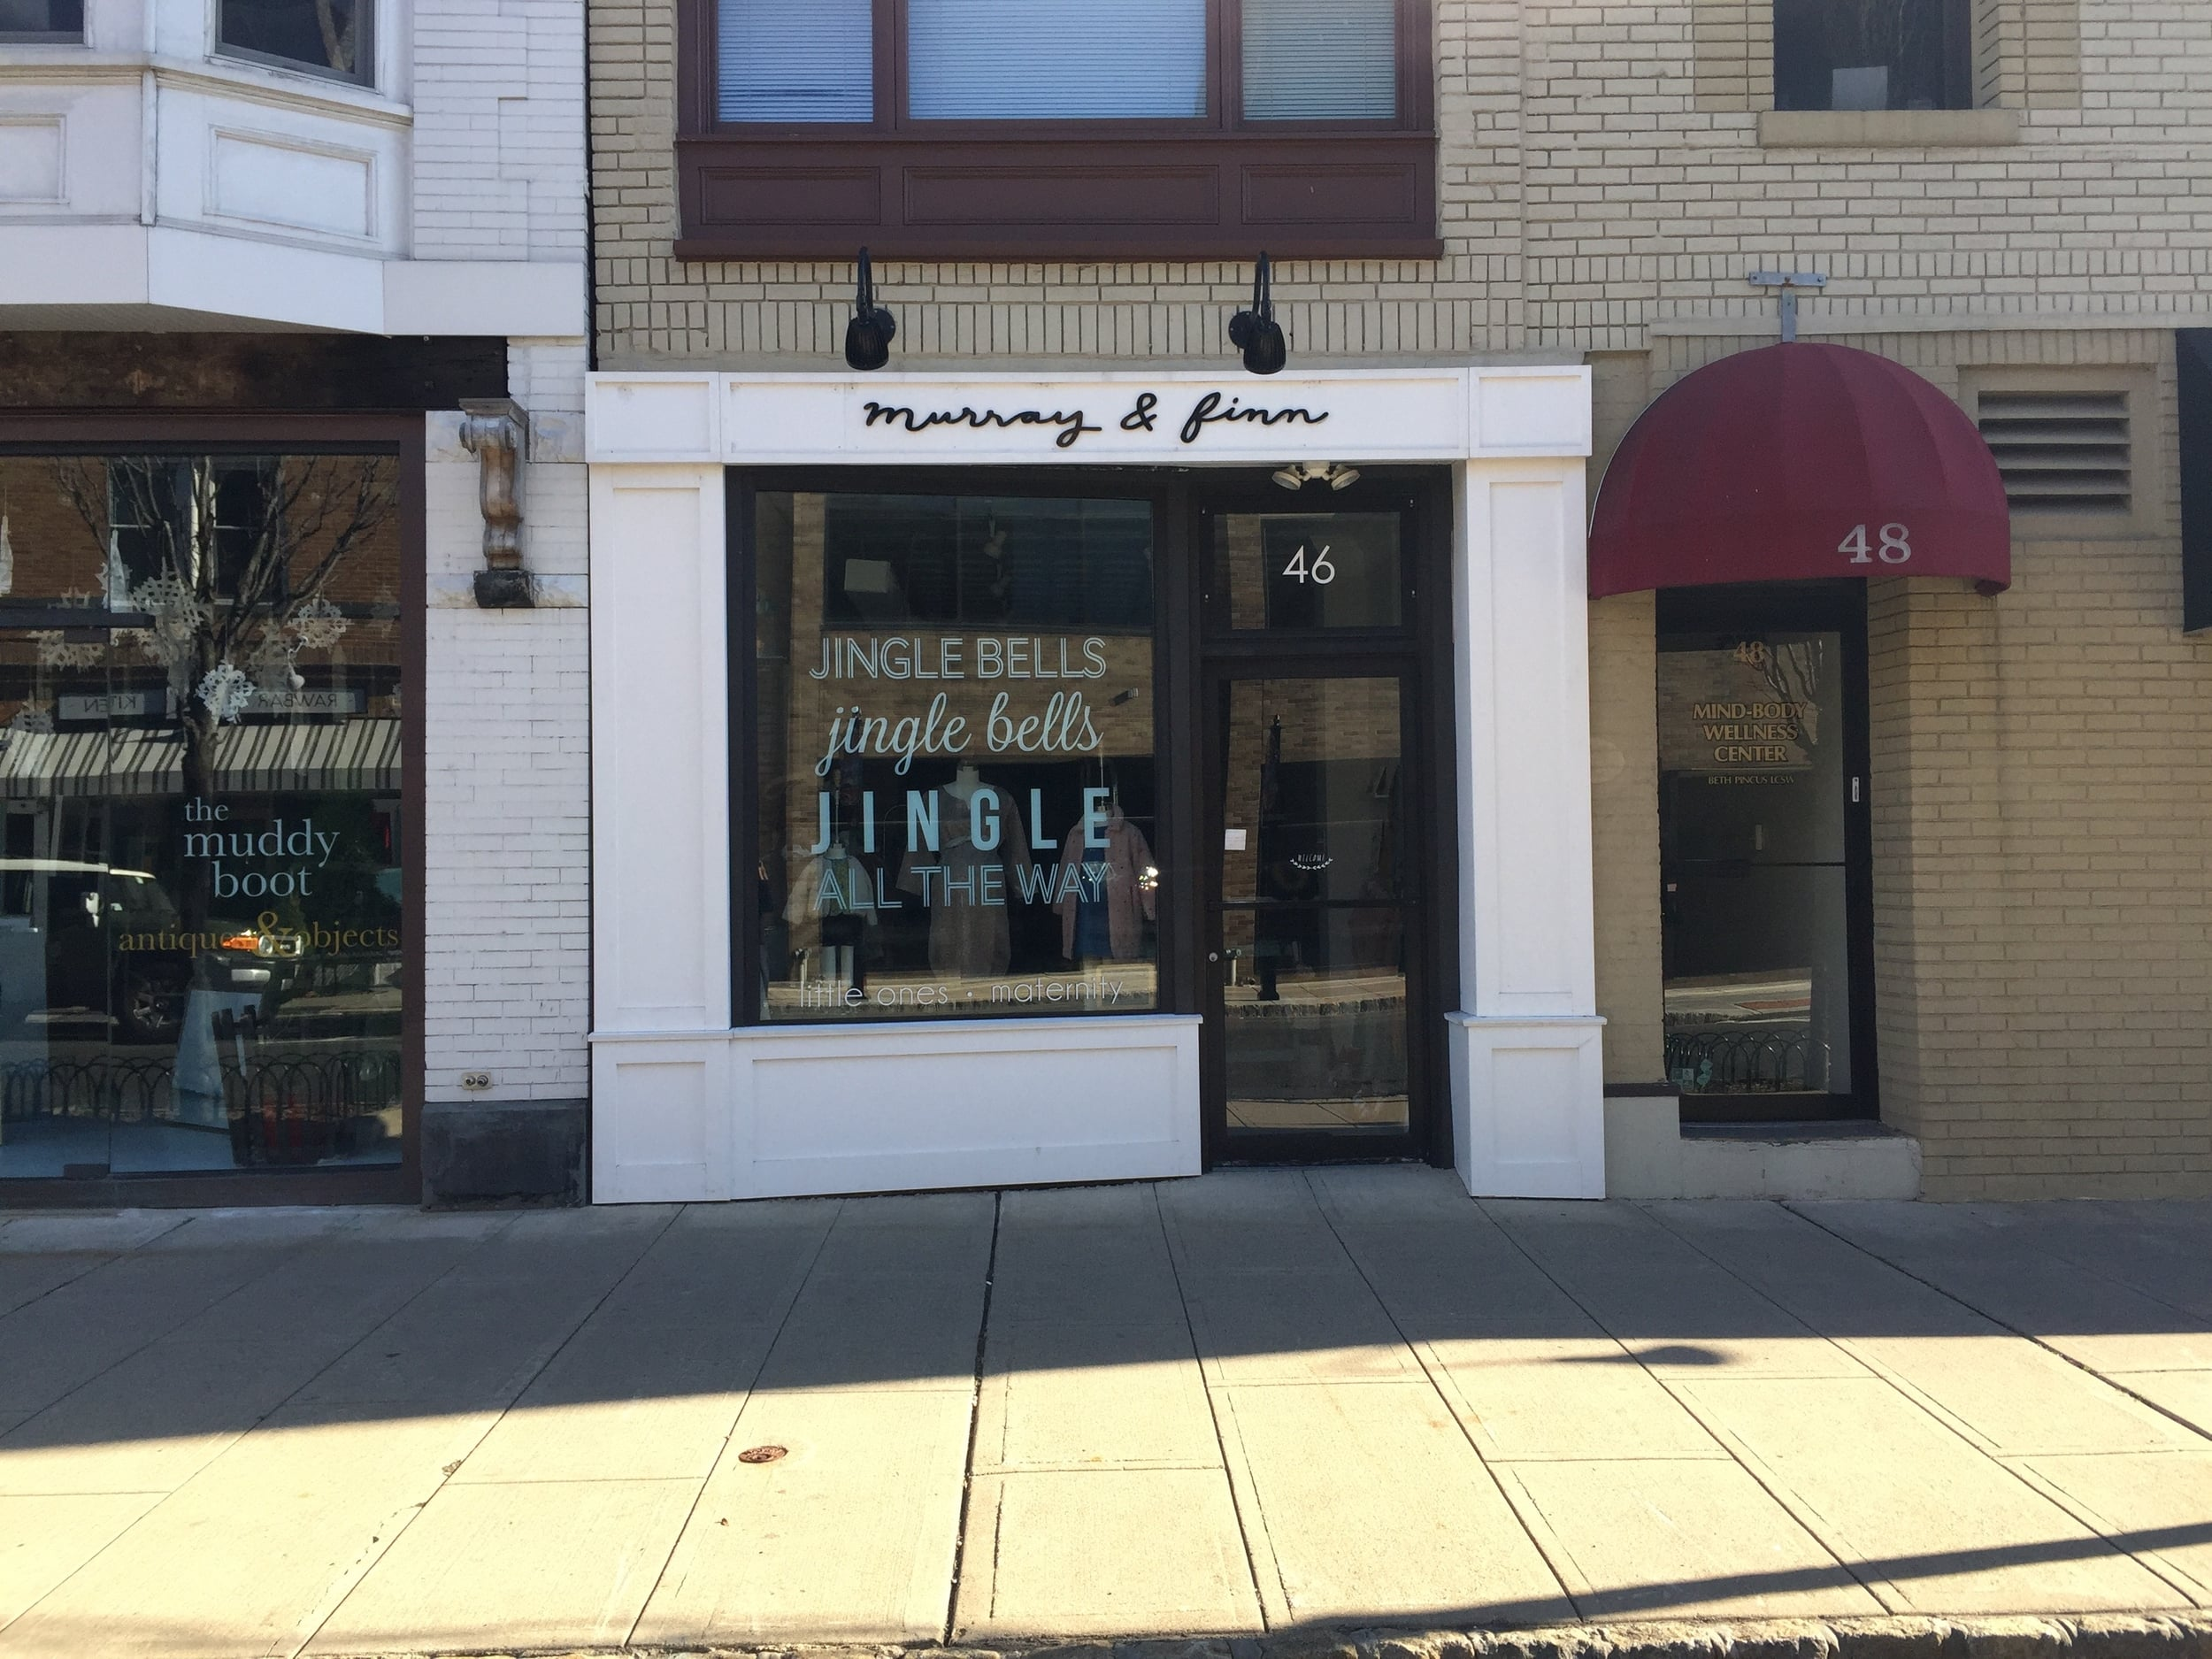 Murray & Finn, Summit  uses adhesive lettering instead of solid signage that blocks the storefront window. This is especially important for stores such as this one that has a small display window area.